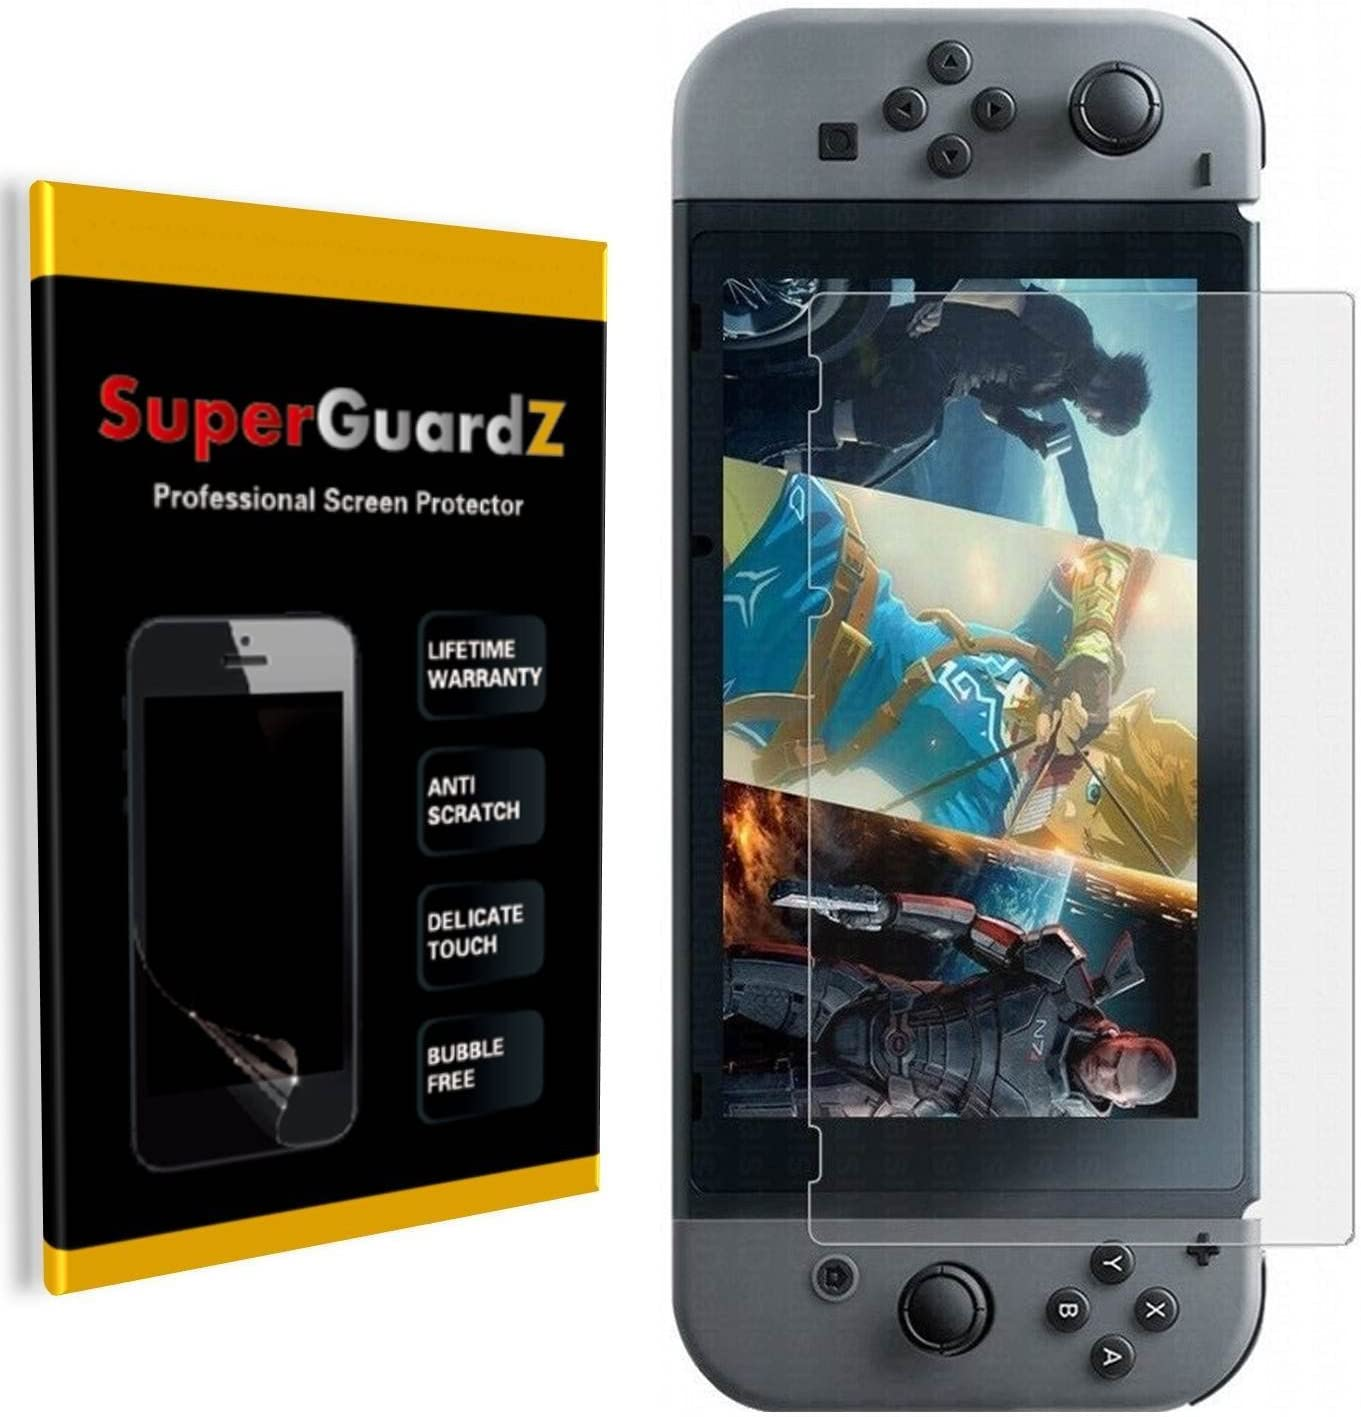 3-Pack For Nintendo Switch Luxury goods - SuperGuardZ Screen Ant Protector Mesa Mall